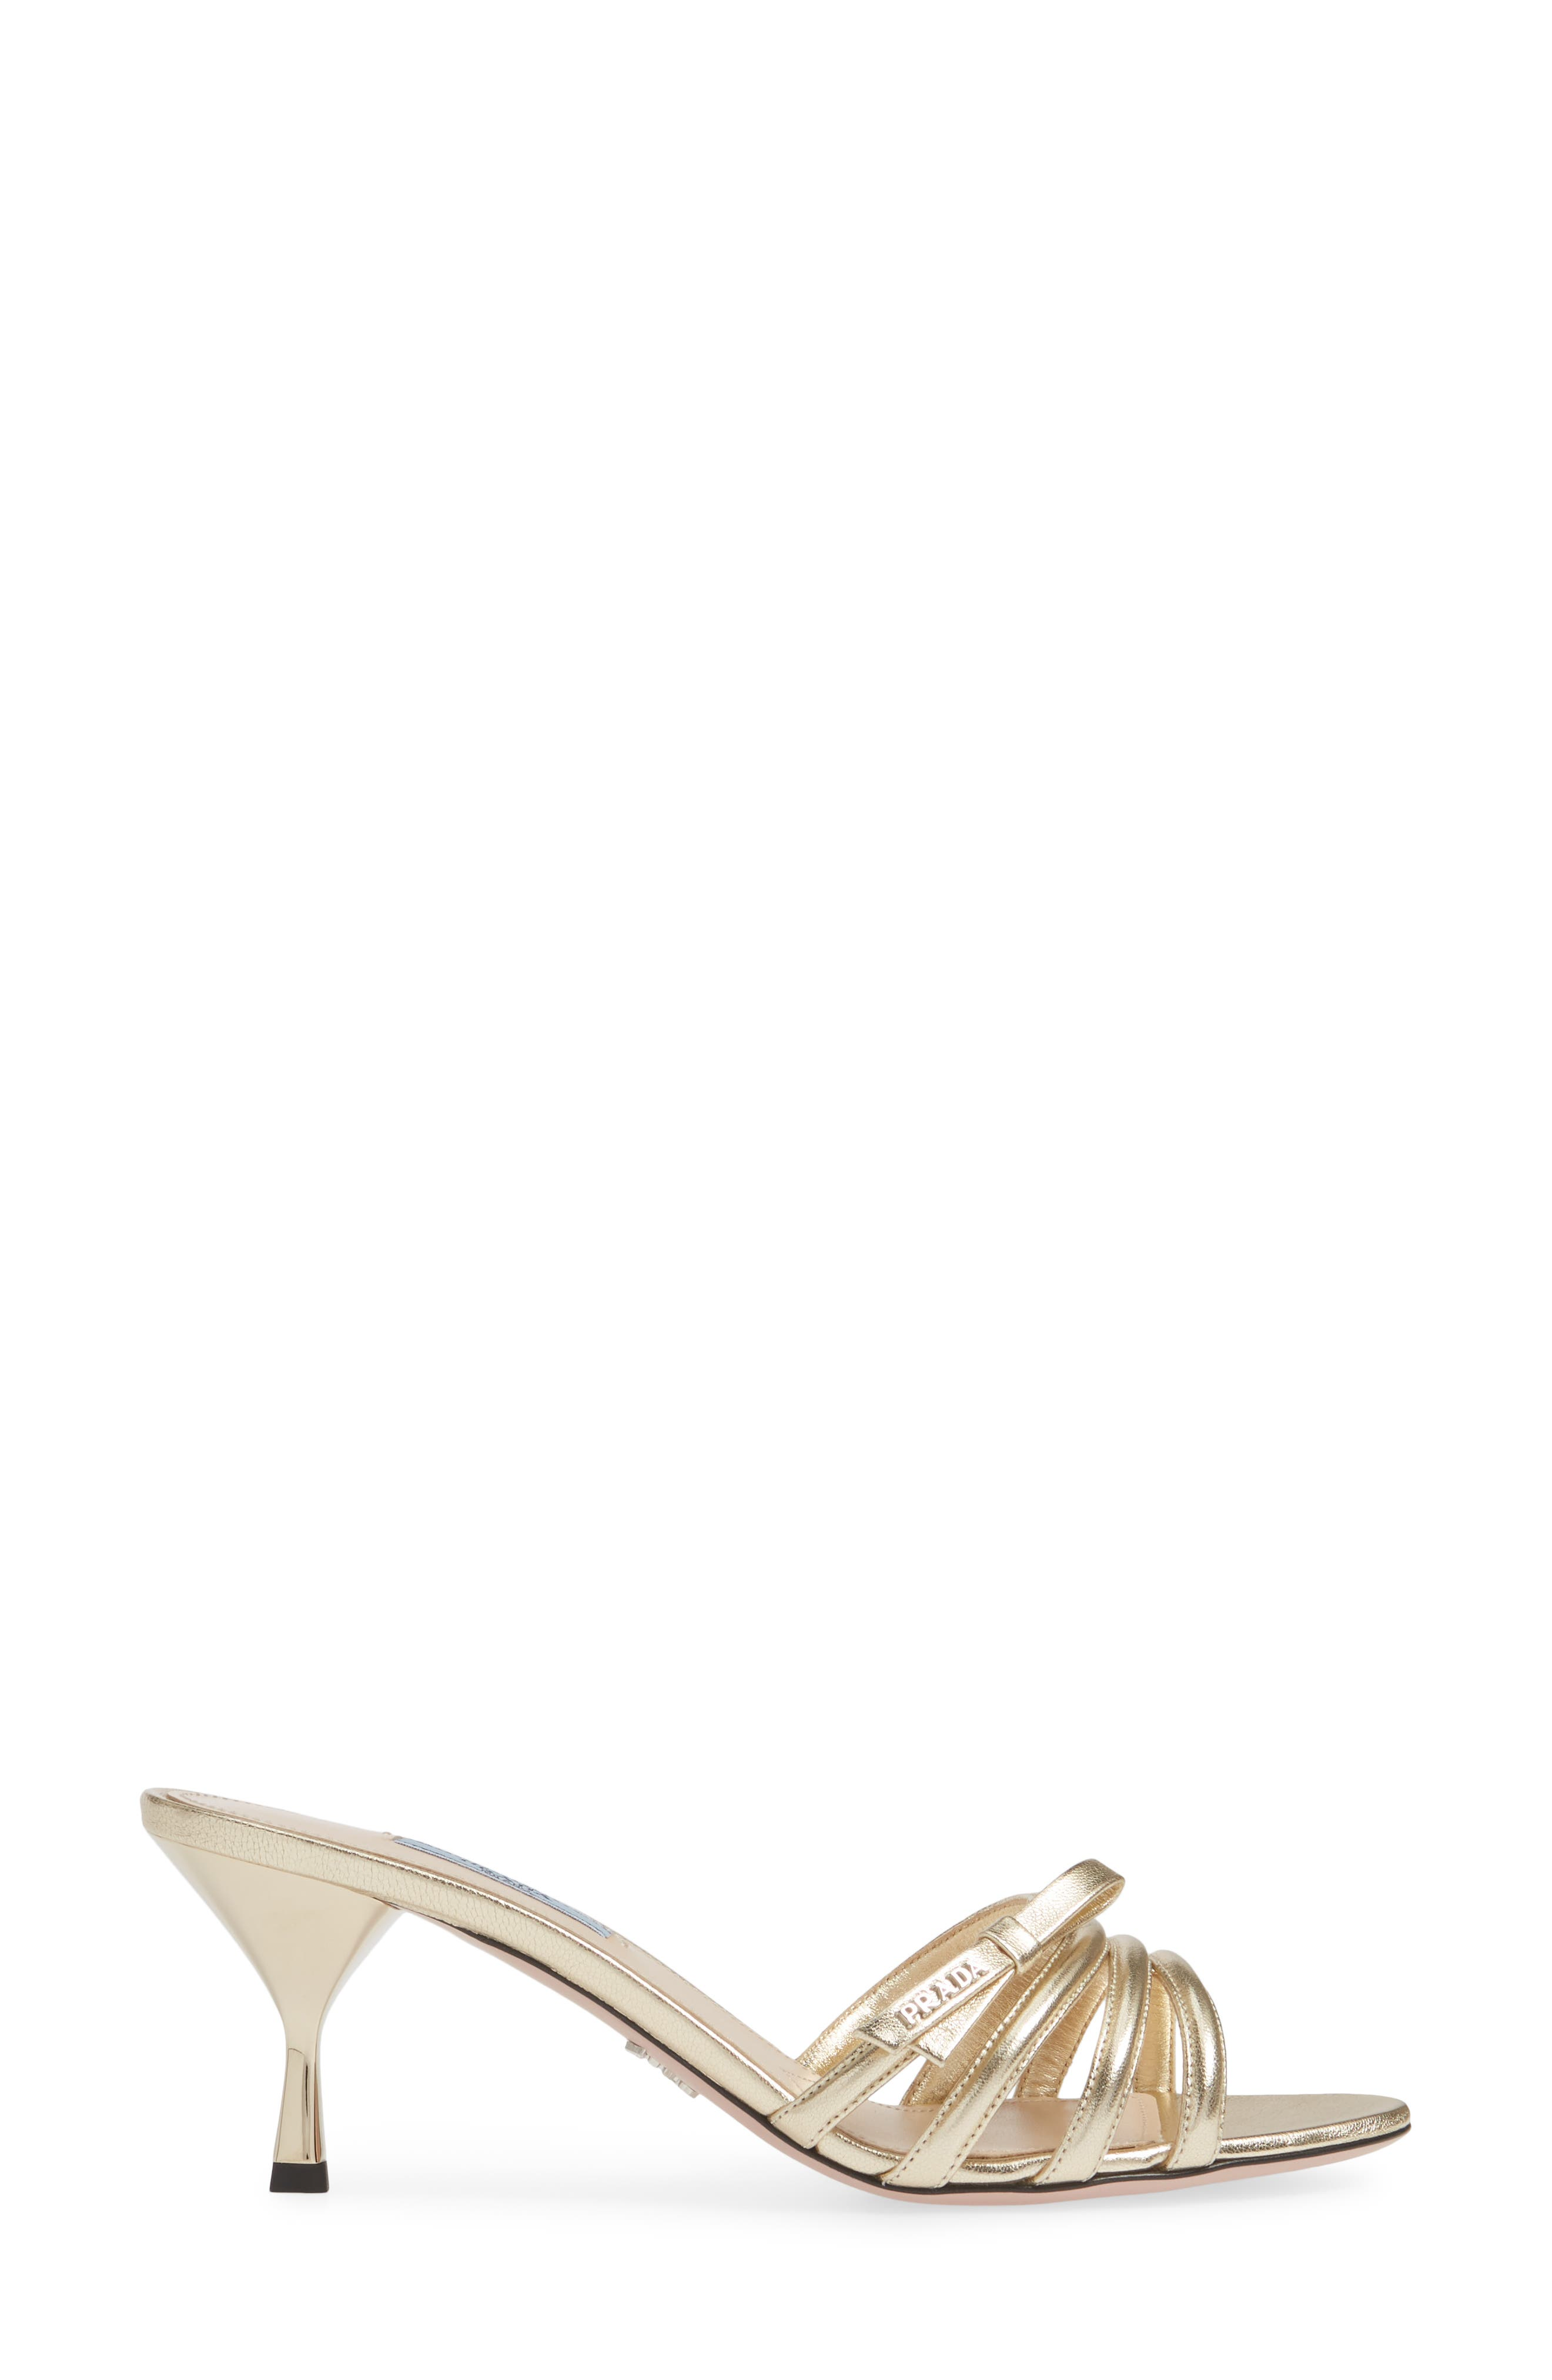 PRADA,                             Metallic Slide Sandal,                             Alternate thumbnail 3, color,                             PIRITE